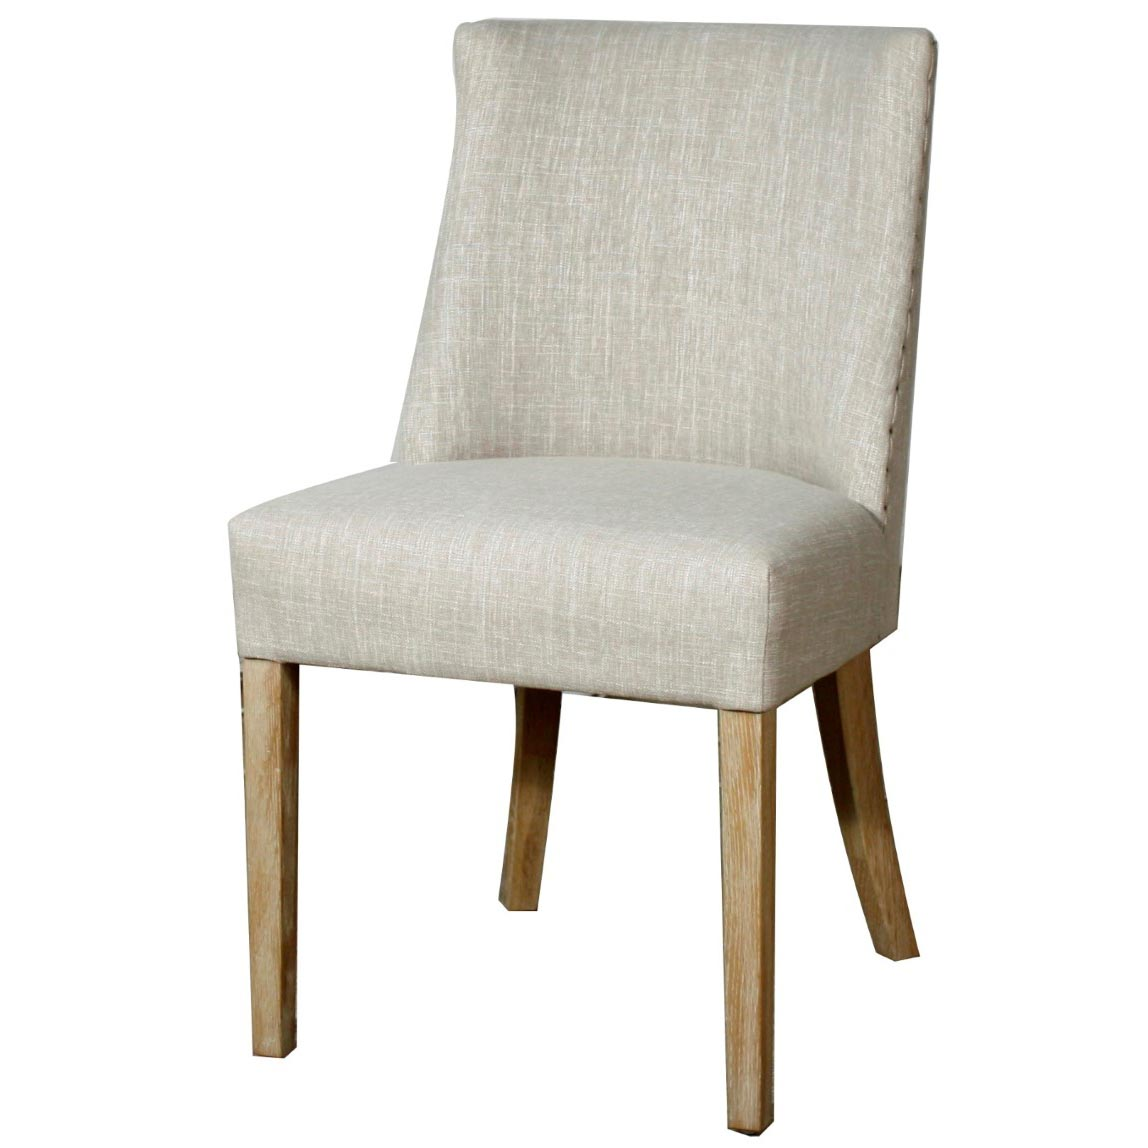 New Paris Fabric Chair, Rice - Boulevard Urban Living